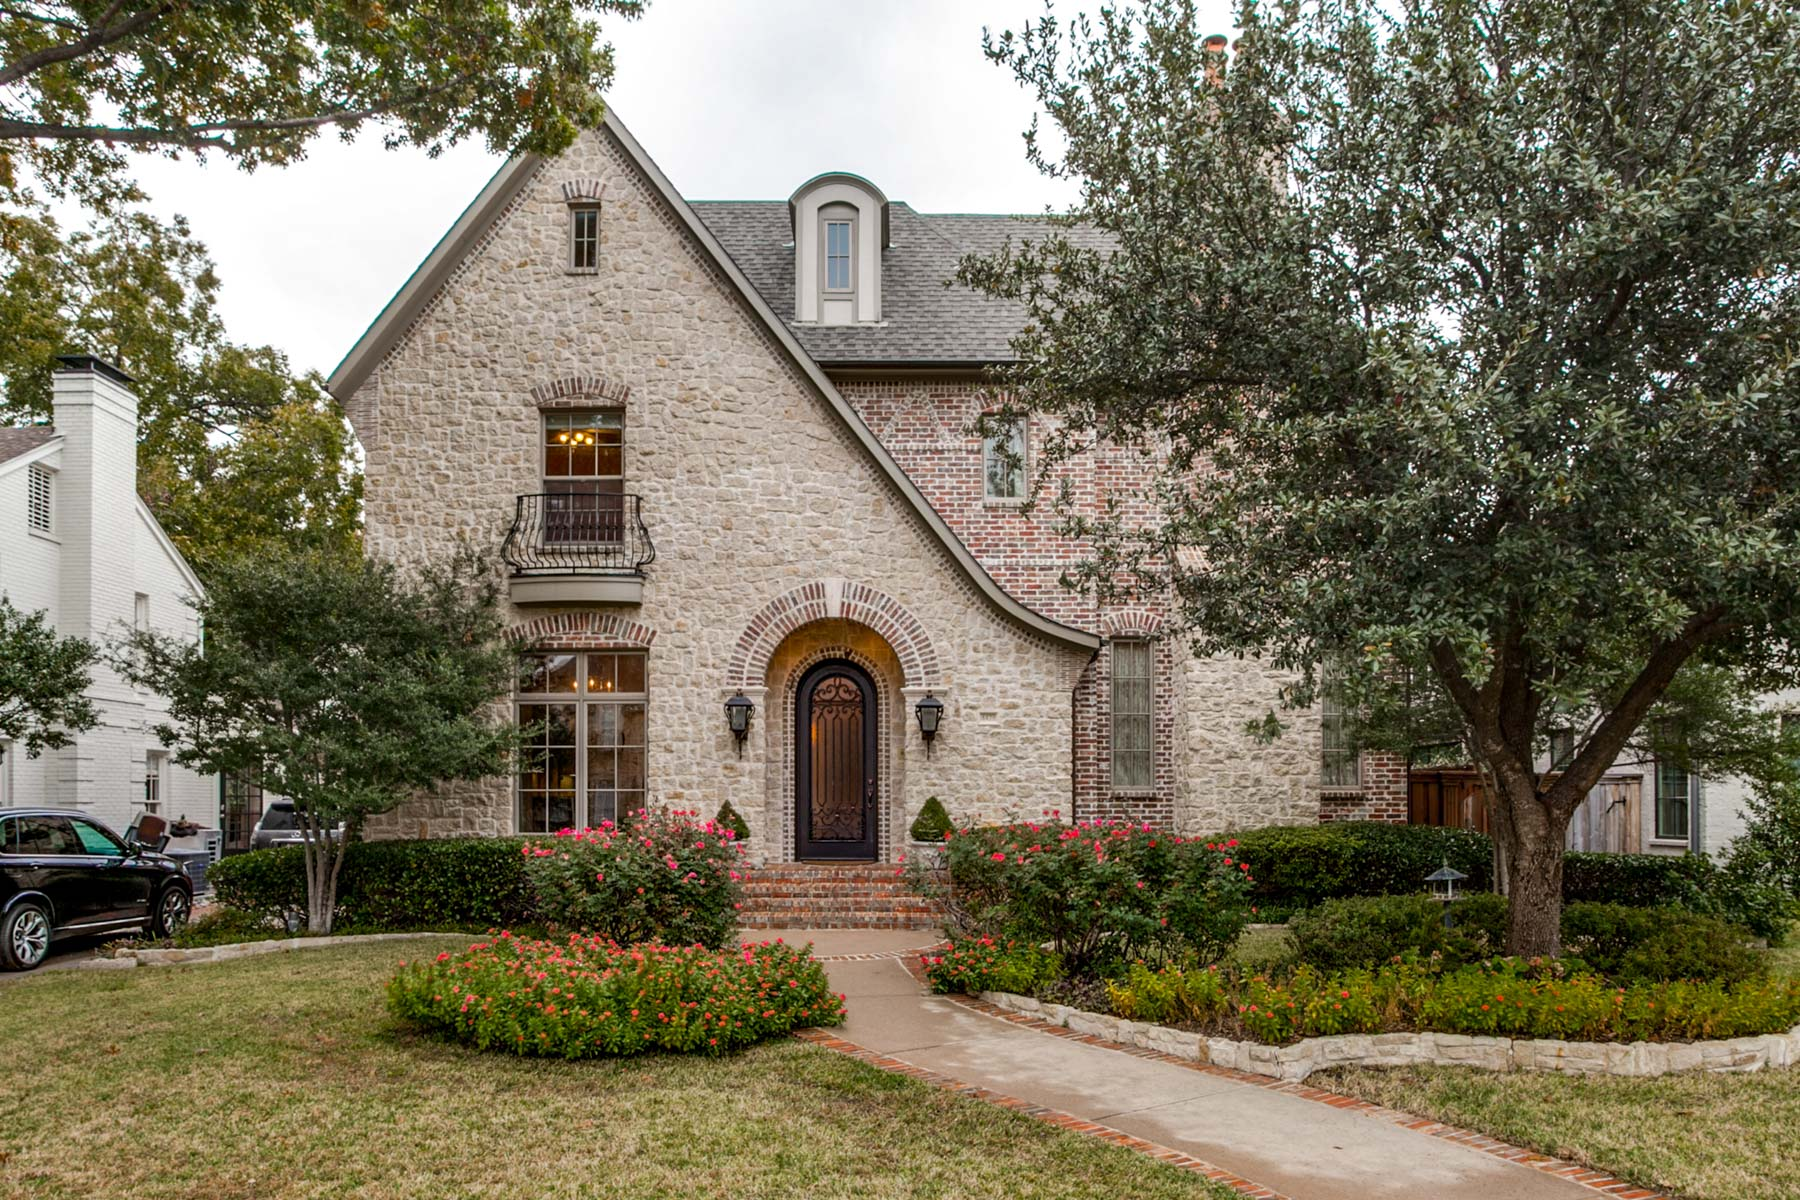 Single Family Home for Sale at 4428 Windsor Parkway, University Park 4428 Windsor Pkwy University Park, Texas, 75205 United States